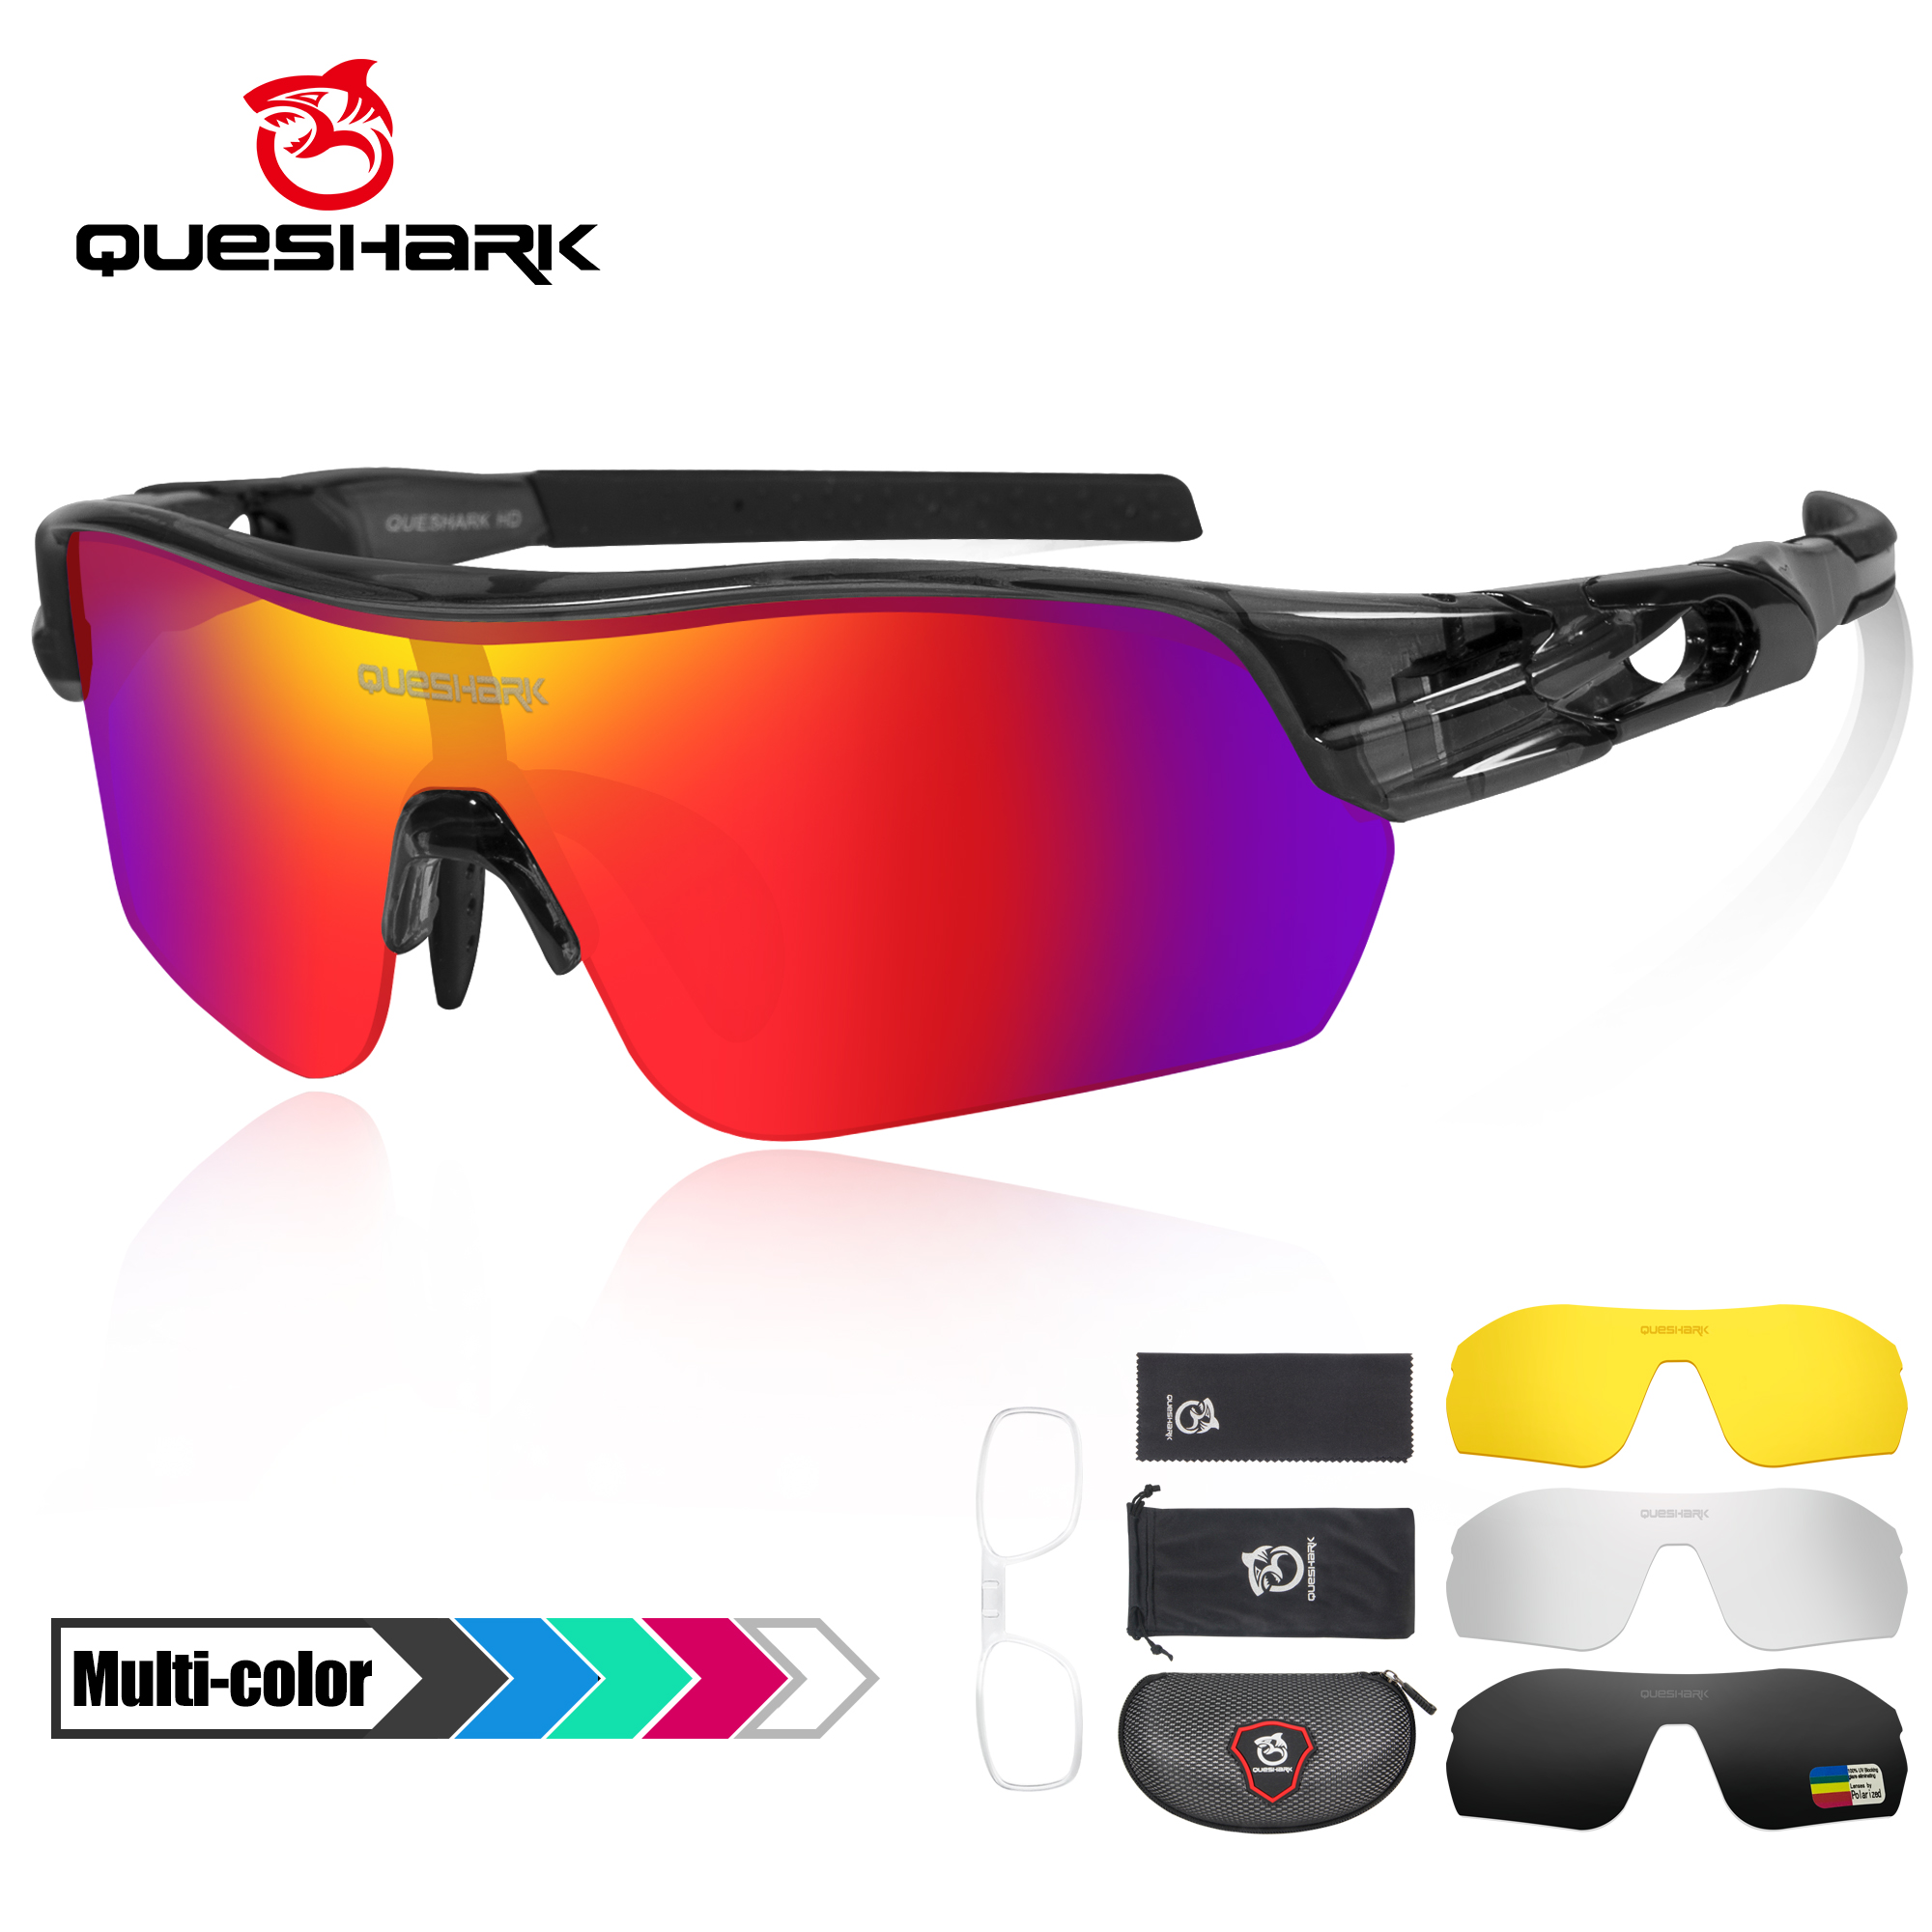 Queshark 2020 New Design Polarized Sport Sunglasses For Men Women Cycling Running Fishing Driving Golf 4 HD Lens Exchangeable